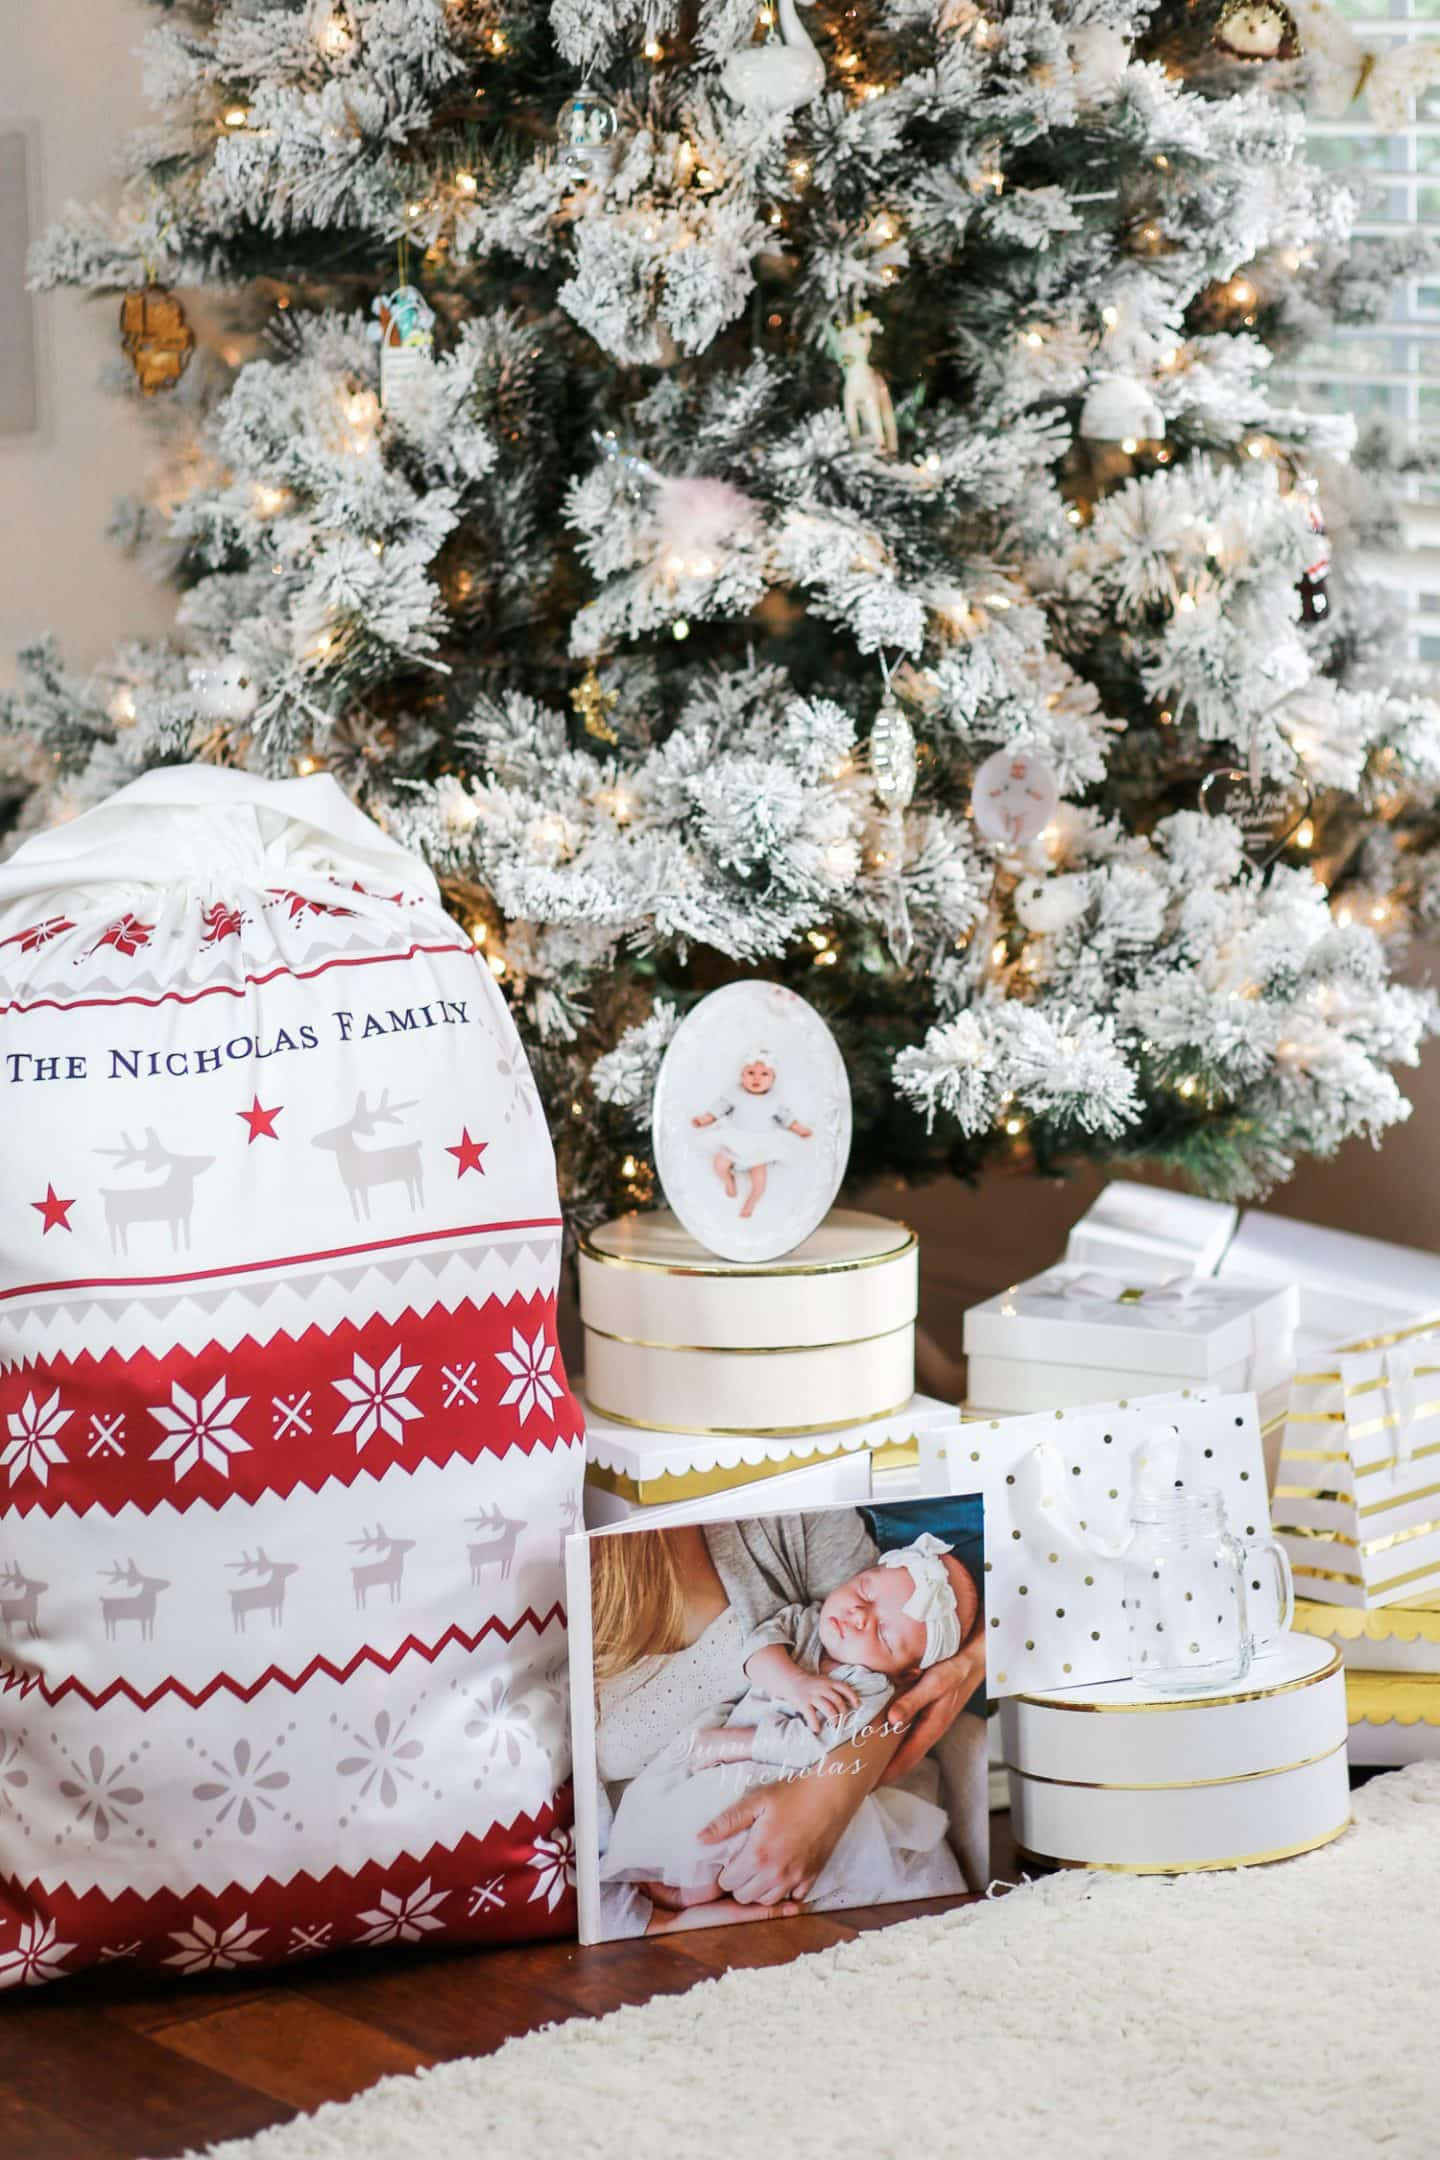 Personalized christmas gift ideas from shutterfly ashley brooke the best personalized gift ideas for christmas negle Gallery